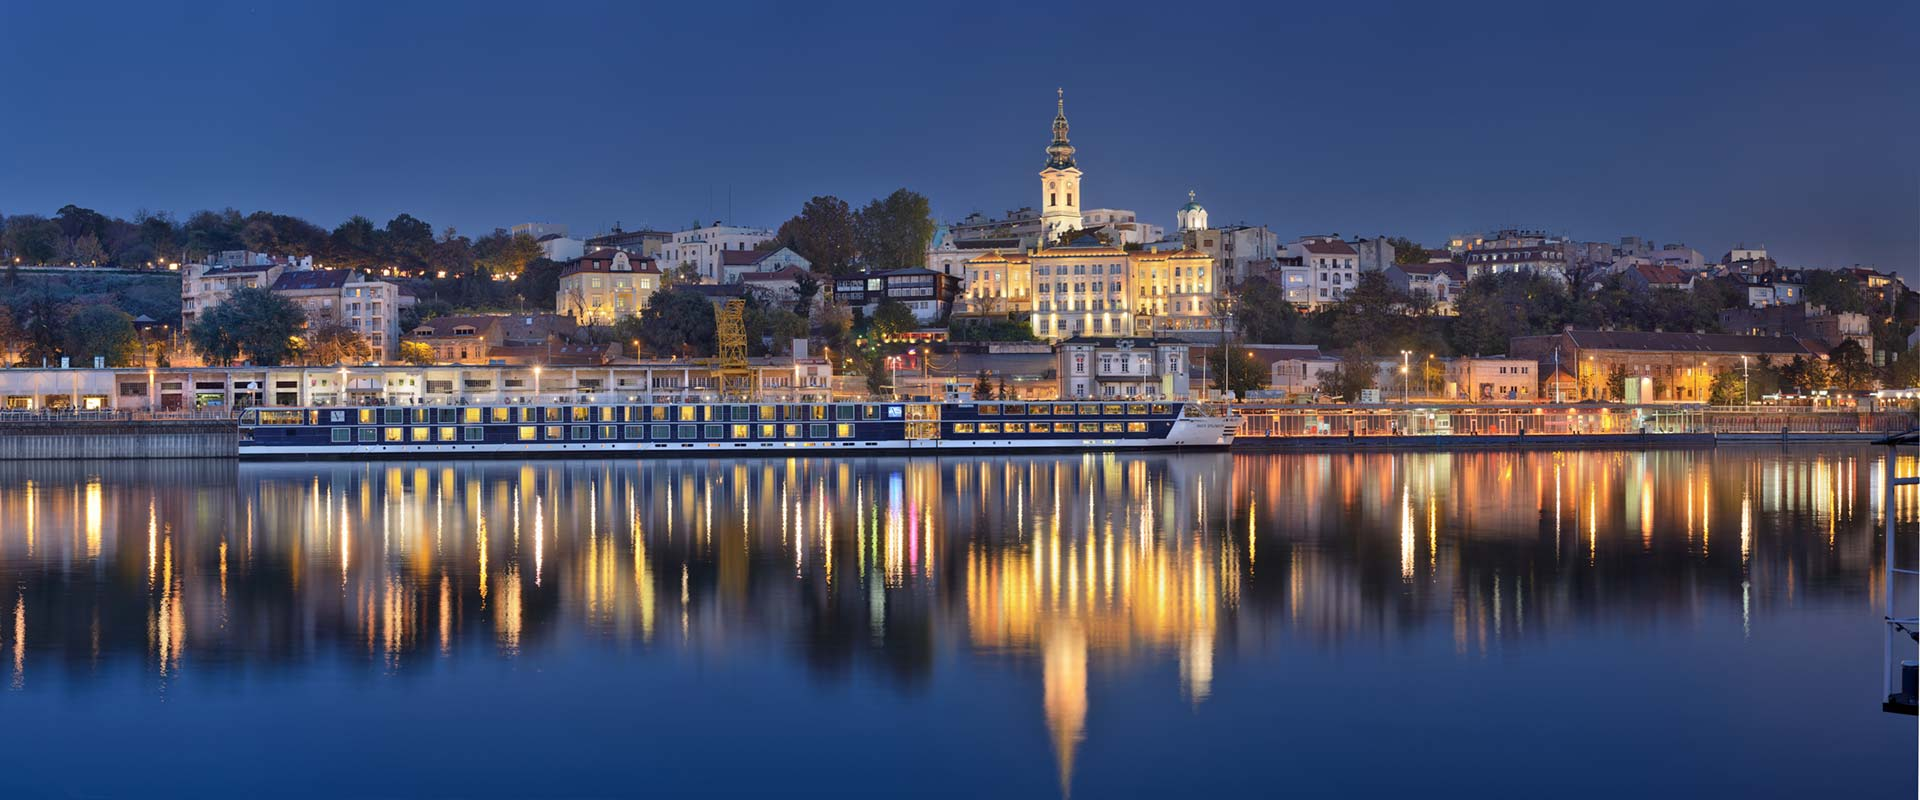 Riverside view, photo by Dragan Obrić